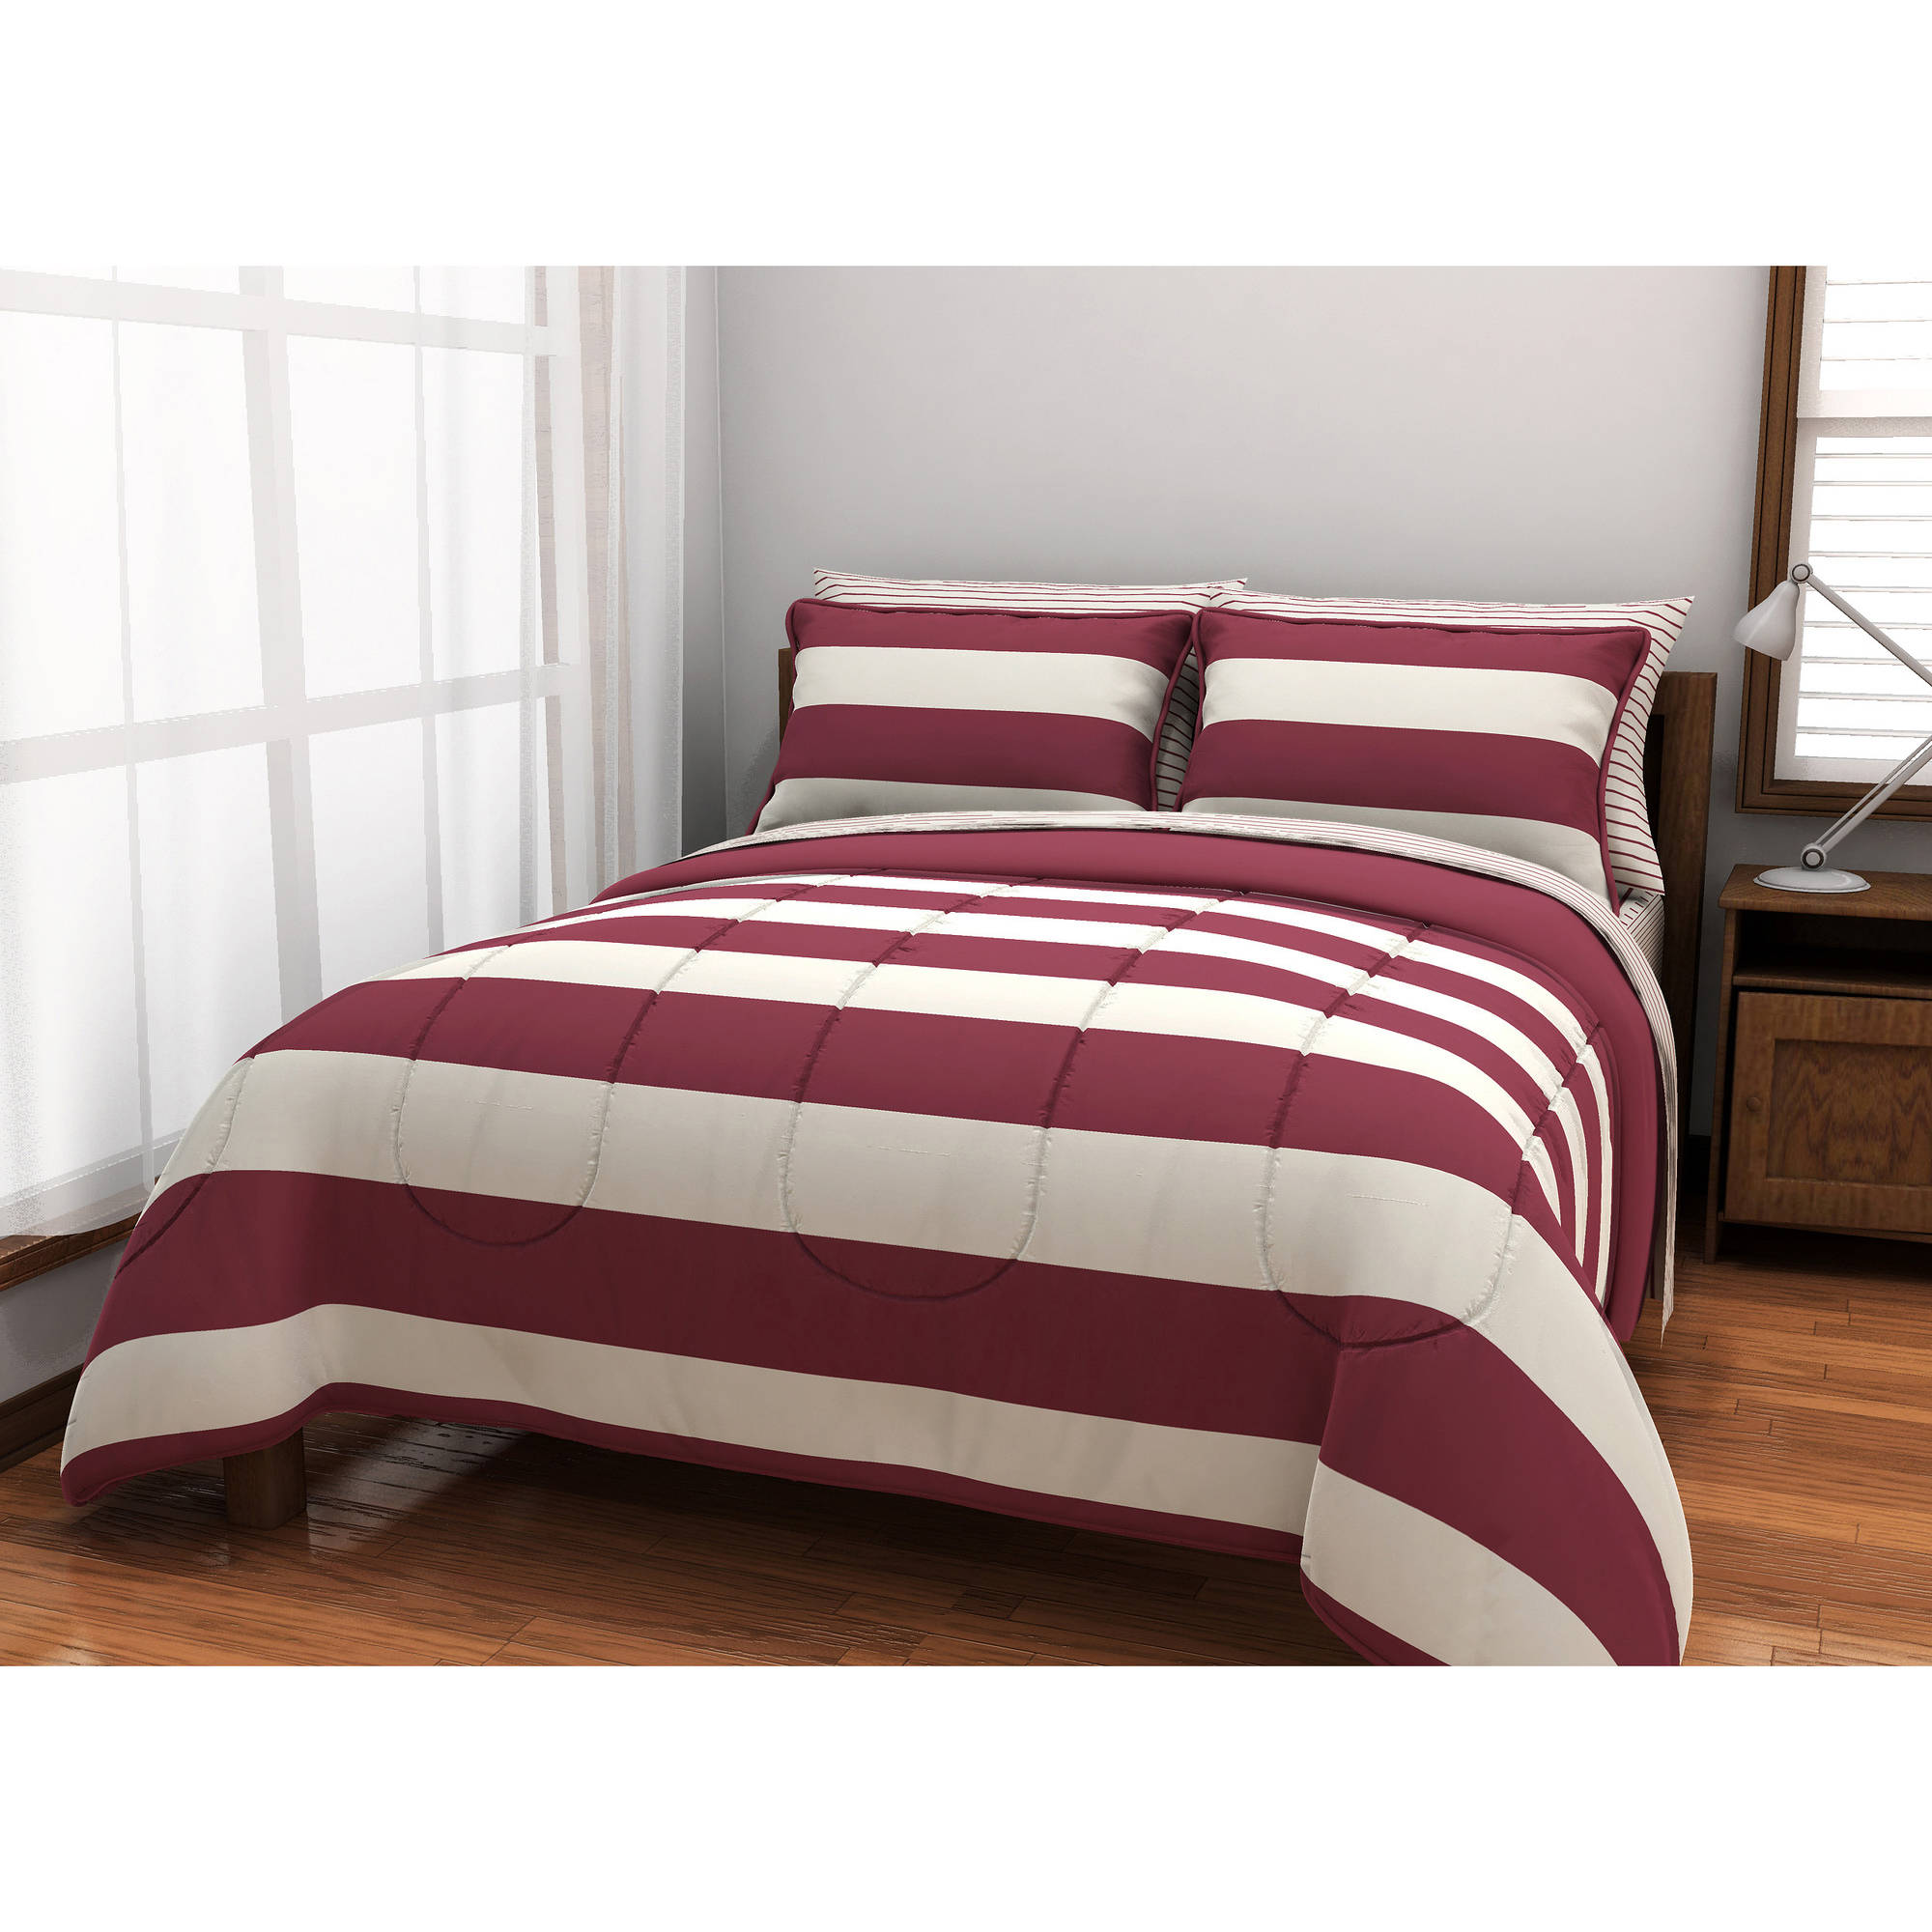 American Originals Rugby Stripe Bed in a Bag Bedding Set Walmart